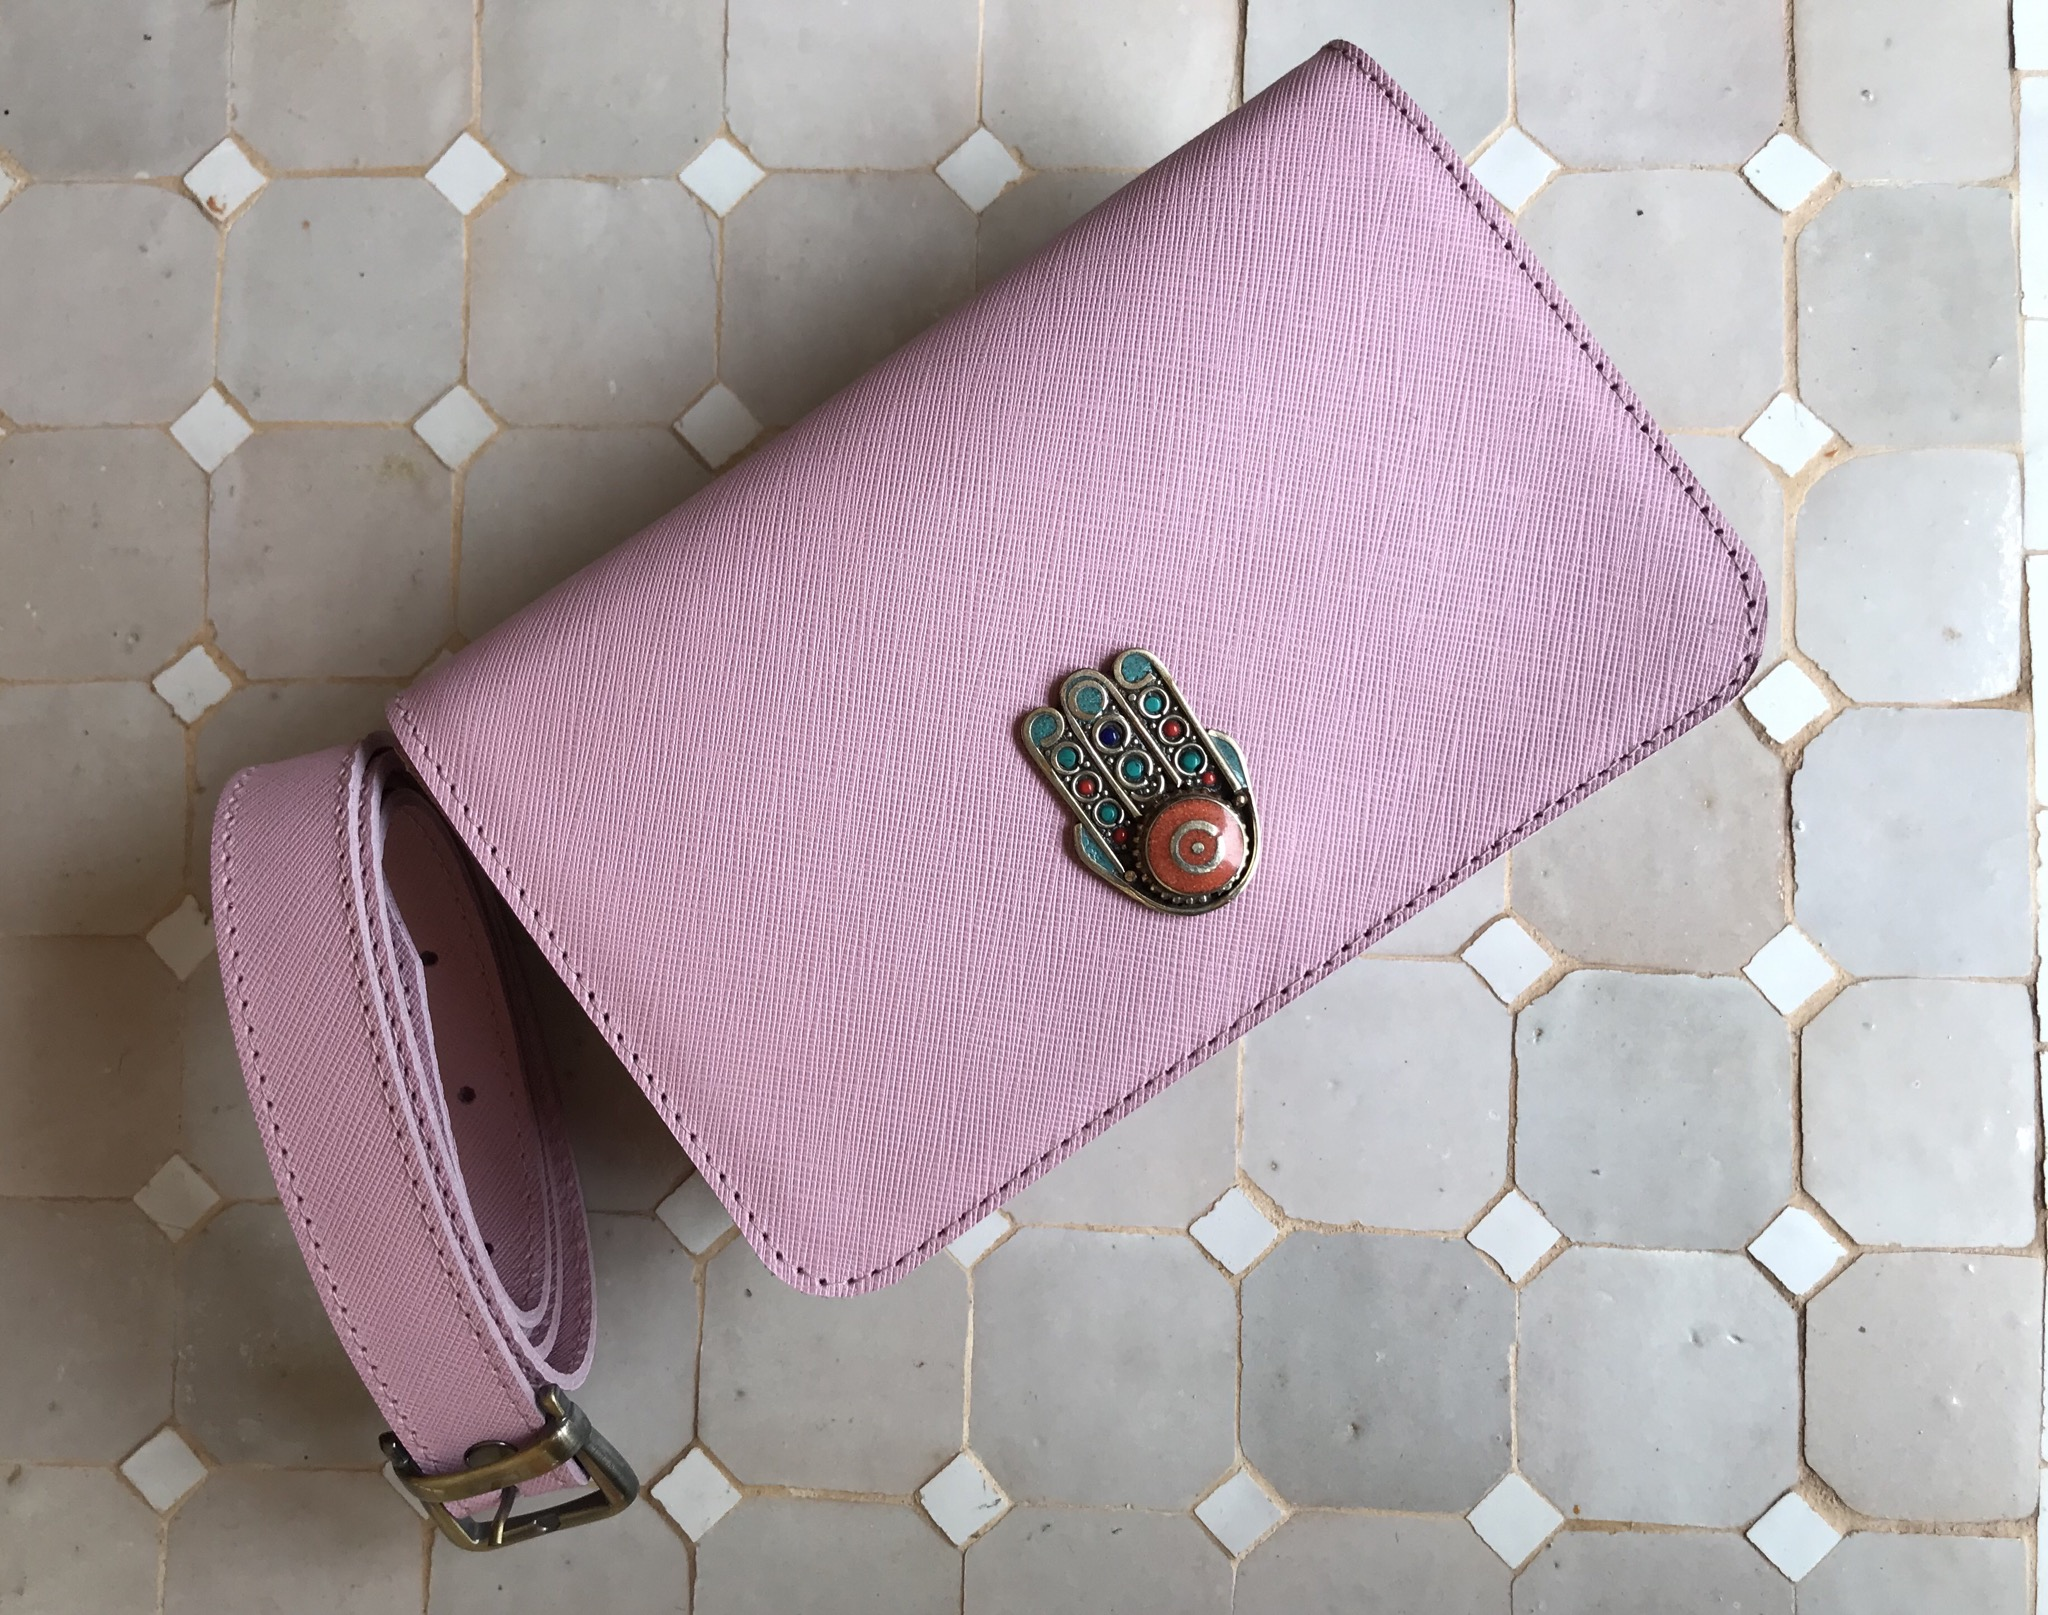 Beltbag Bag leather pink with khmissa